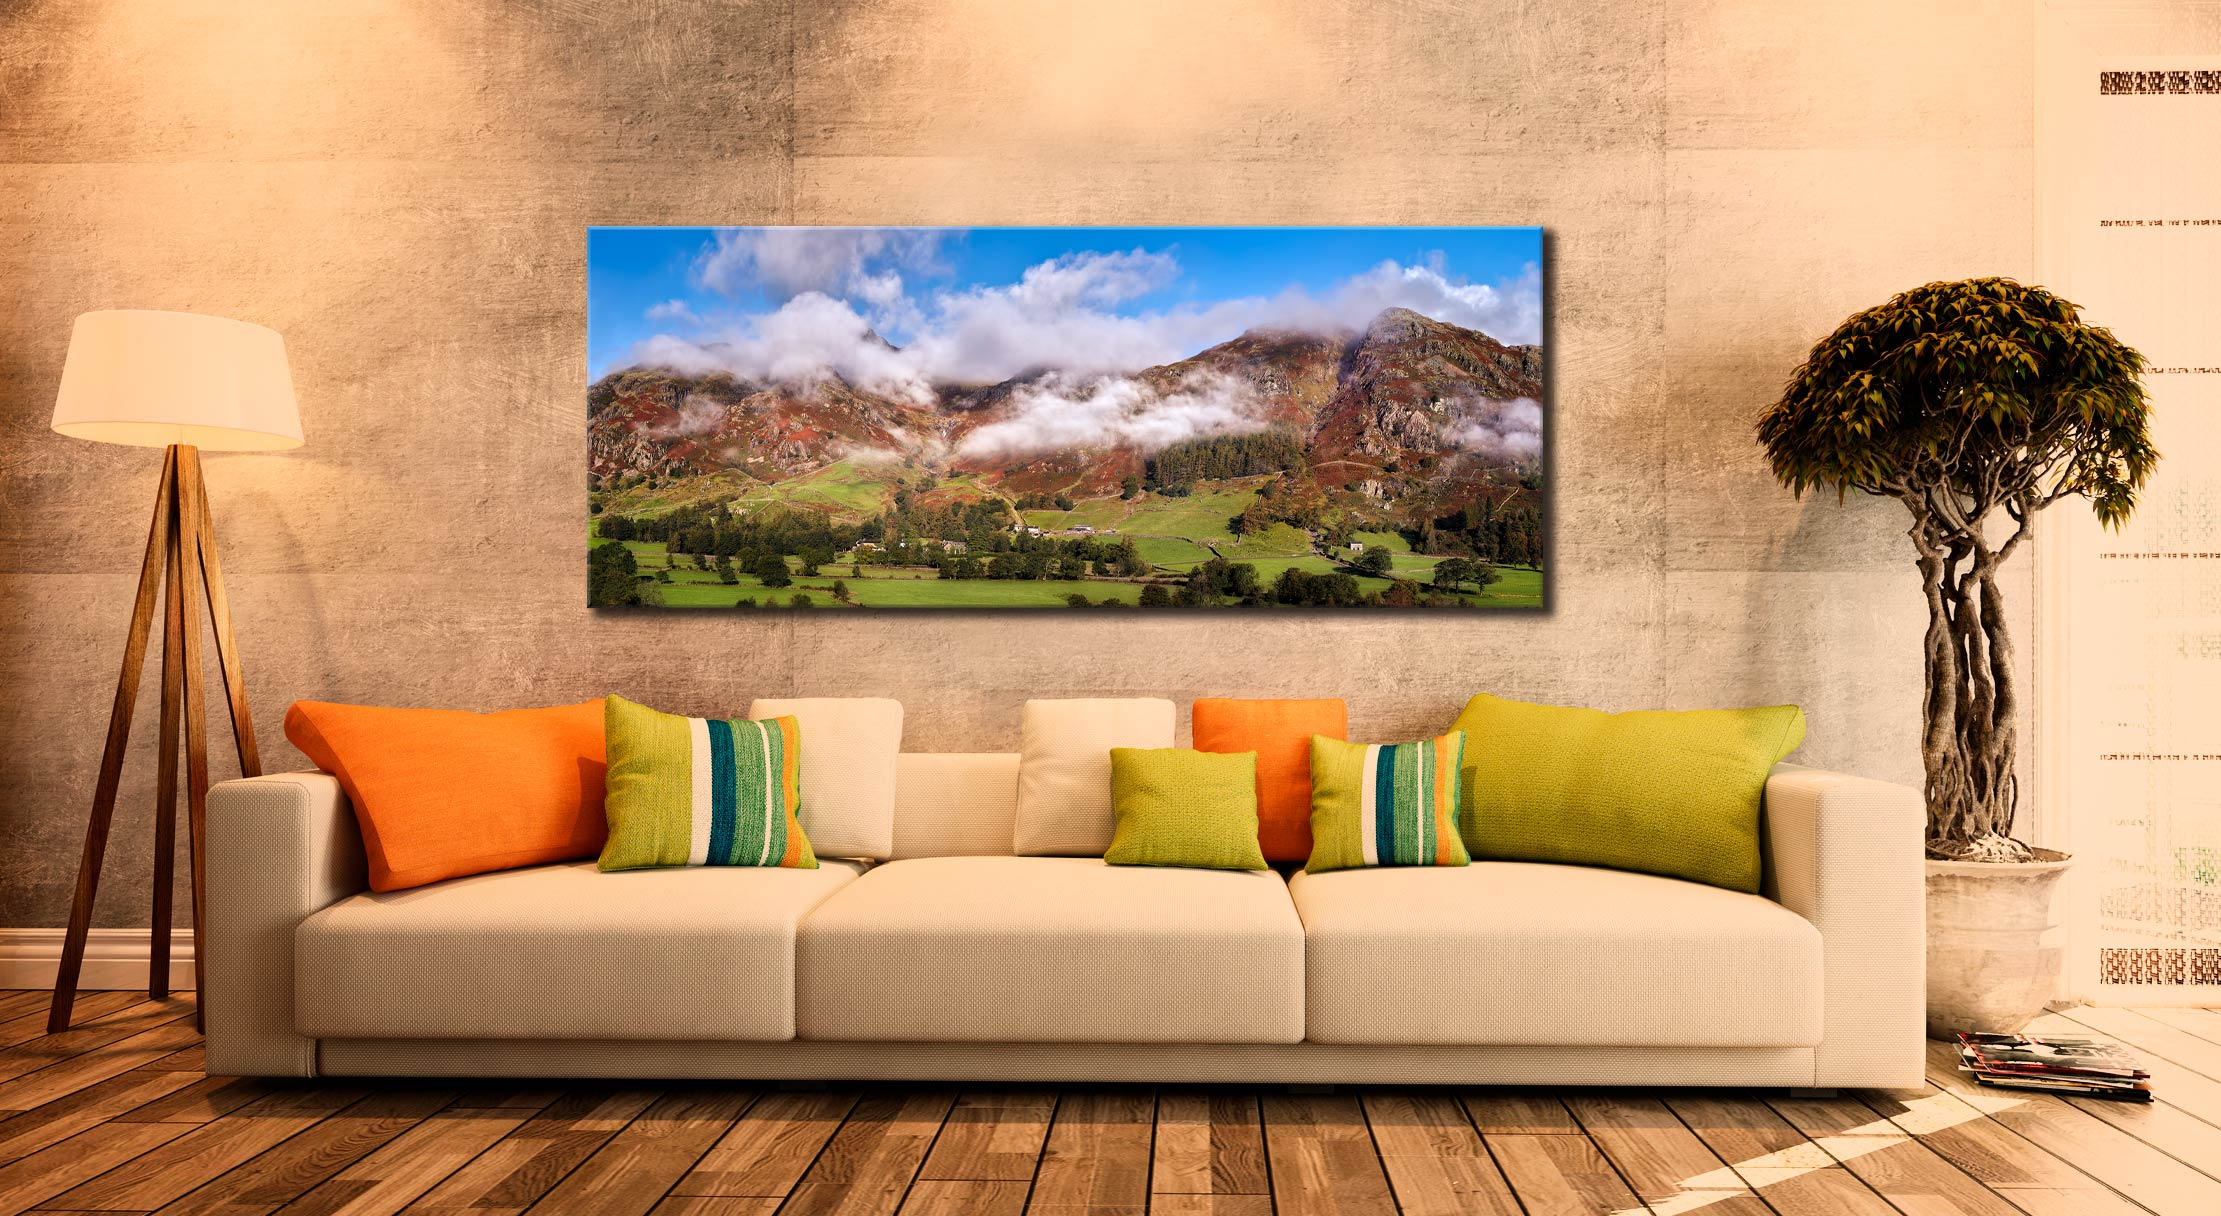 Misty Mountains of Langdale - Canvas Print on Wall